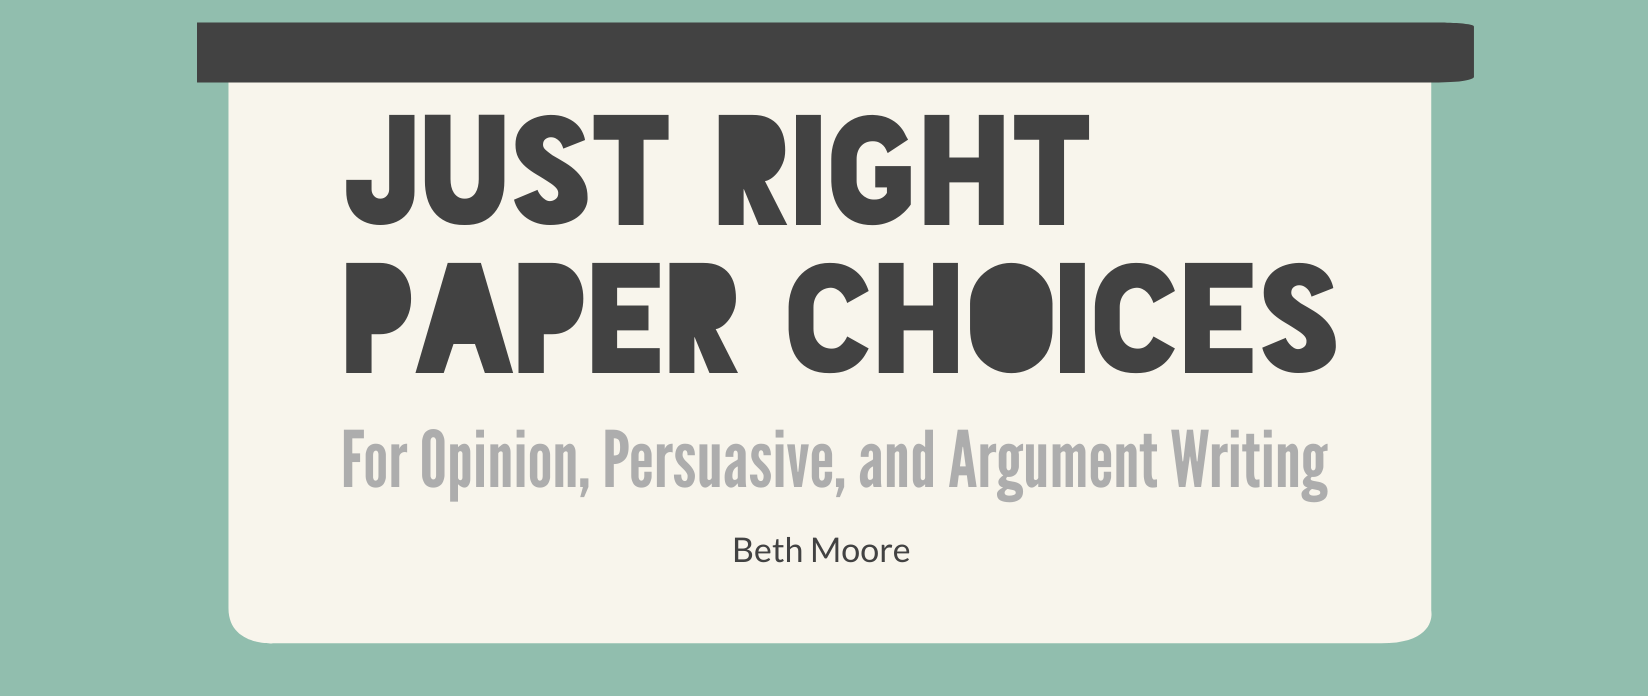 Paper Choices for Opinion and Argument Writing: Reaching Your Writers